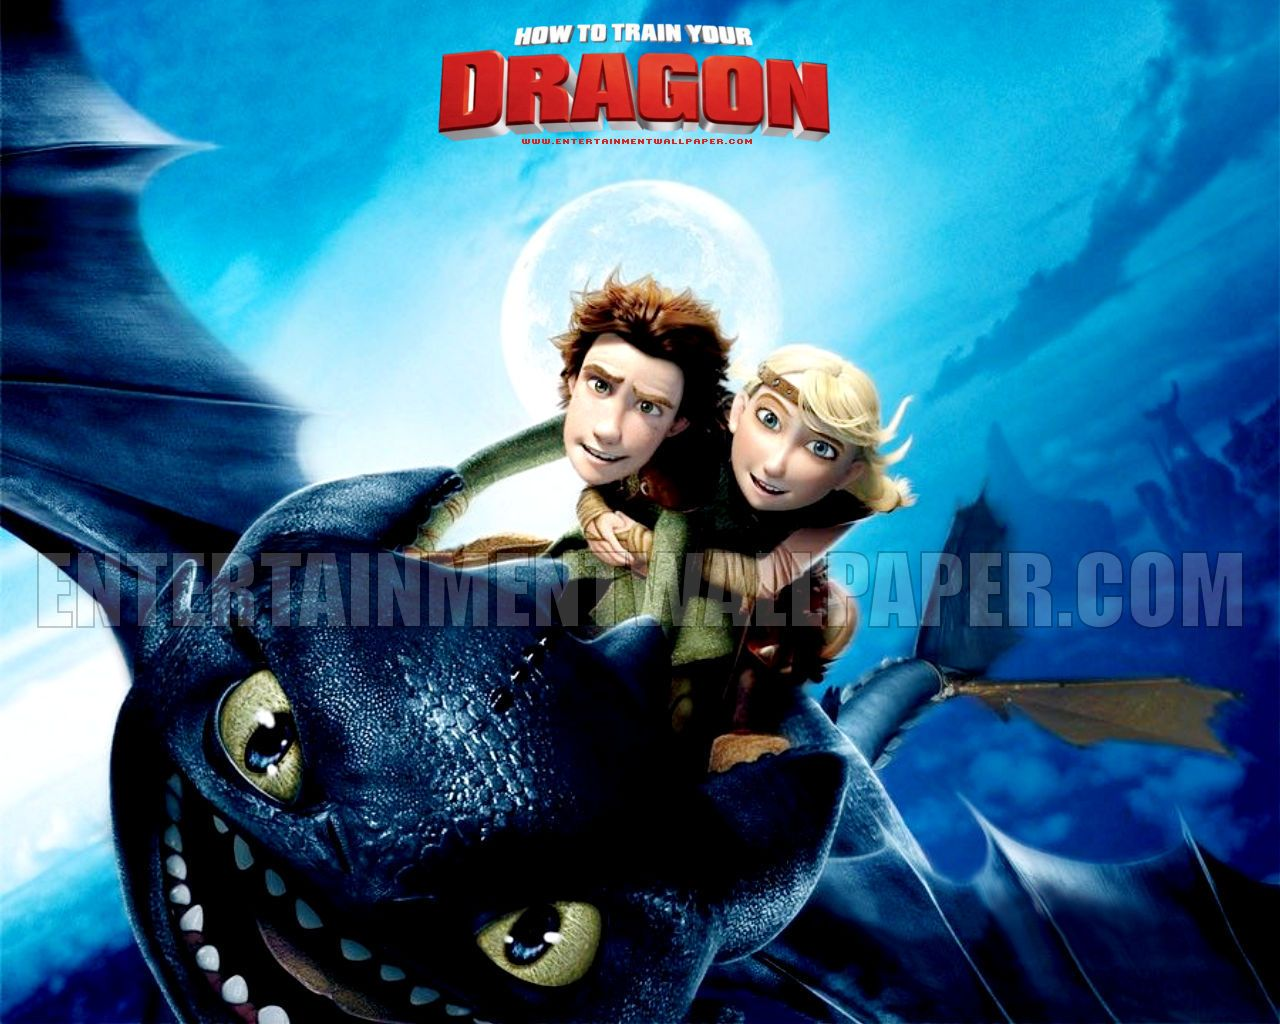 How To Train Your Dragon Wallpaper How To Train Your Dragon How Train Your Dragon How To Train Your Dragon Animation